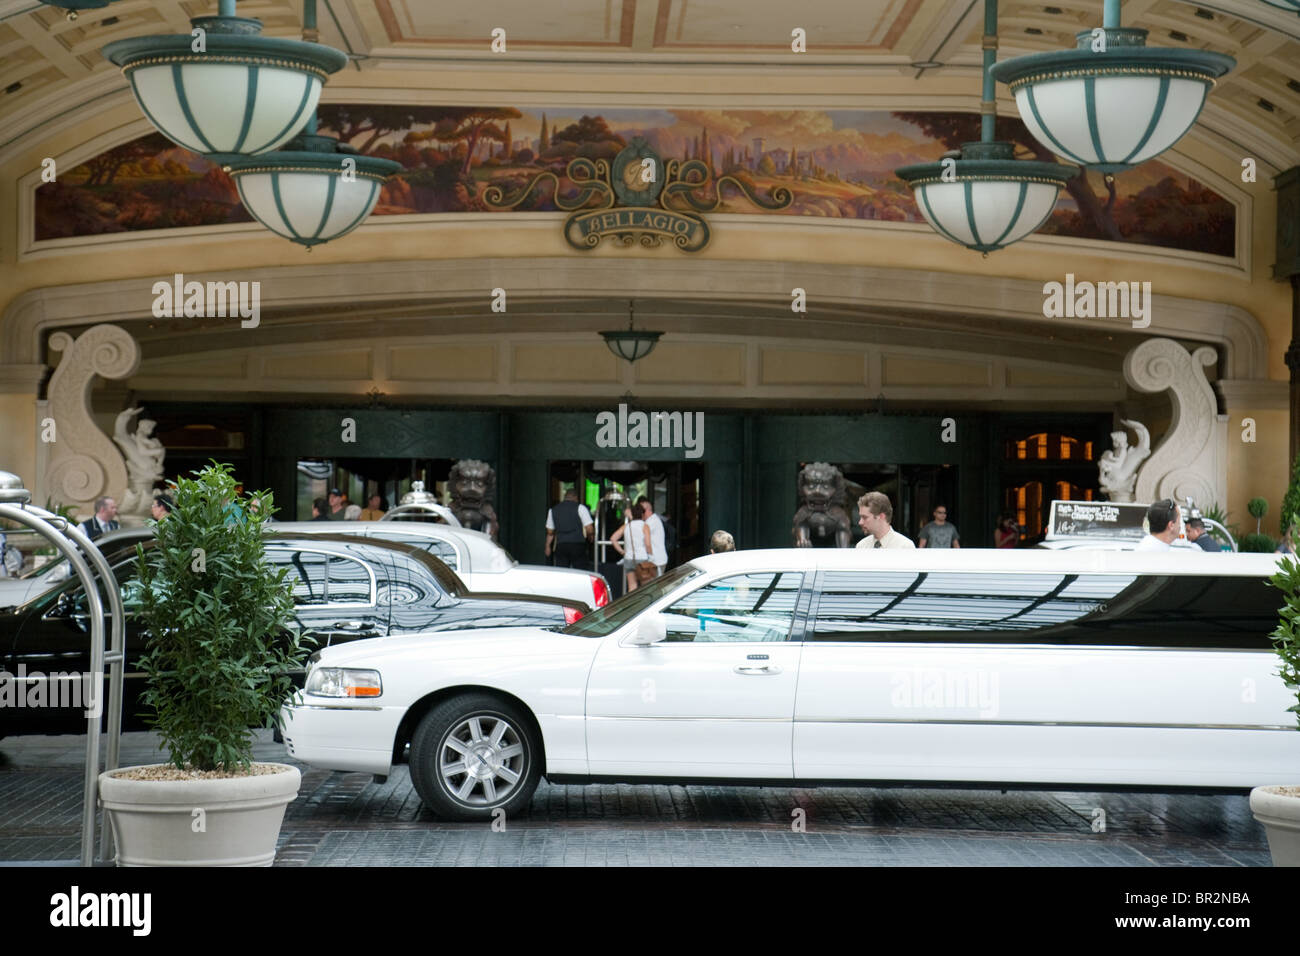 A white limousine at the entrance to the Bellagio Hotel, the Strip, Las Vegas Nevada USA - Stock Image